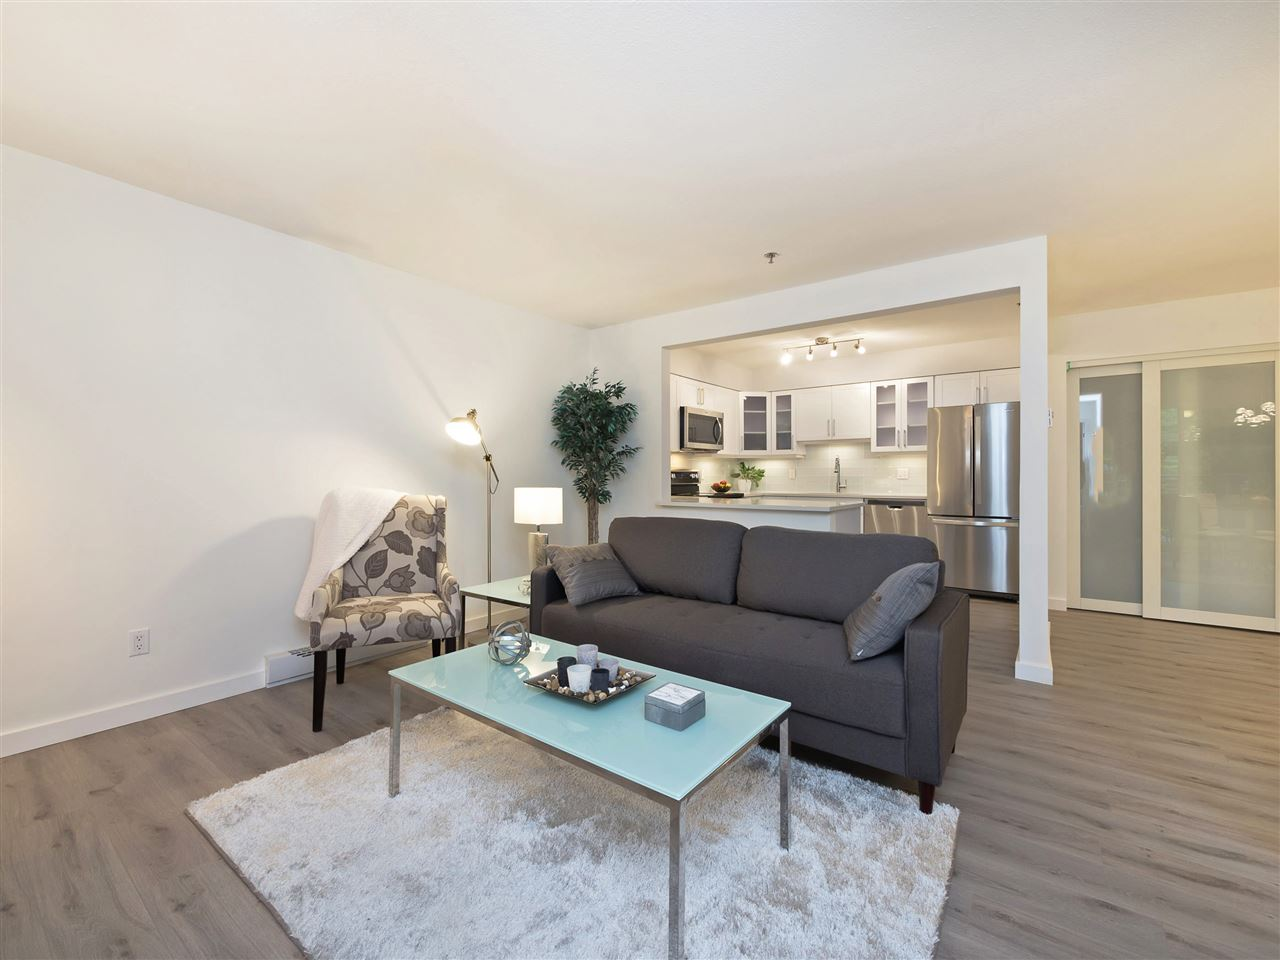 Condo Apartment at 211 1148 WESTWOOD STREET, Unit 211, Coquitlam, British Columbia. Image 6